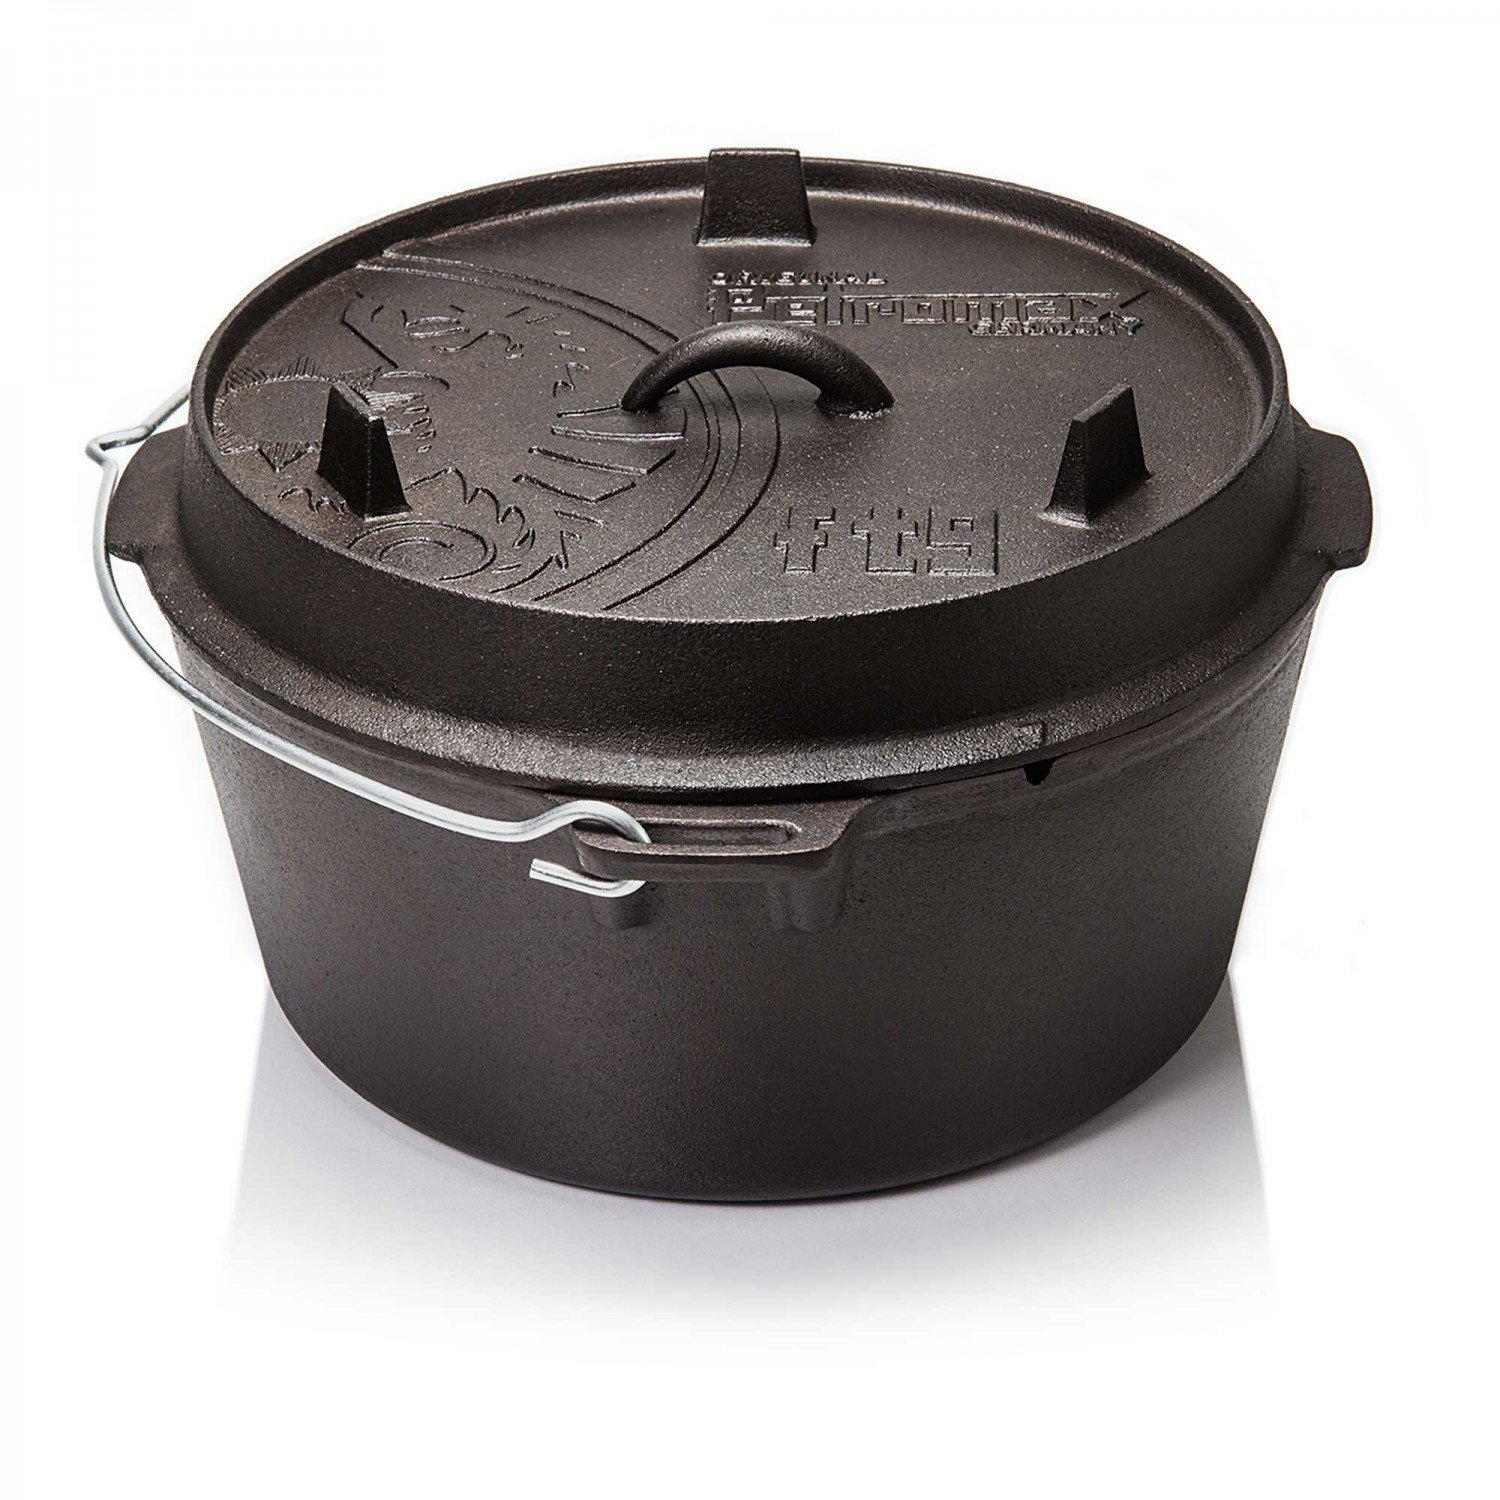 Petromax Feuertopf ft9 (Dutch Oven) /Bild:Amazon.de